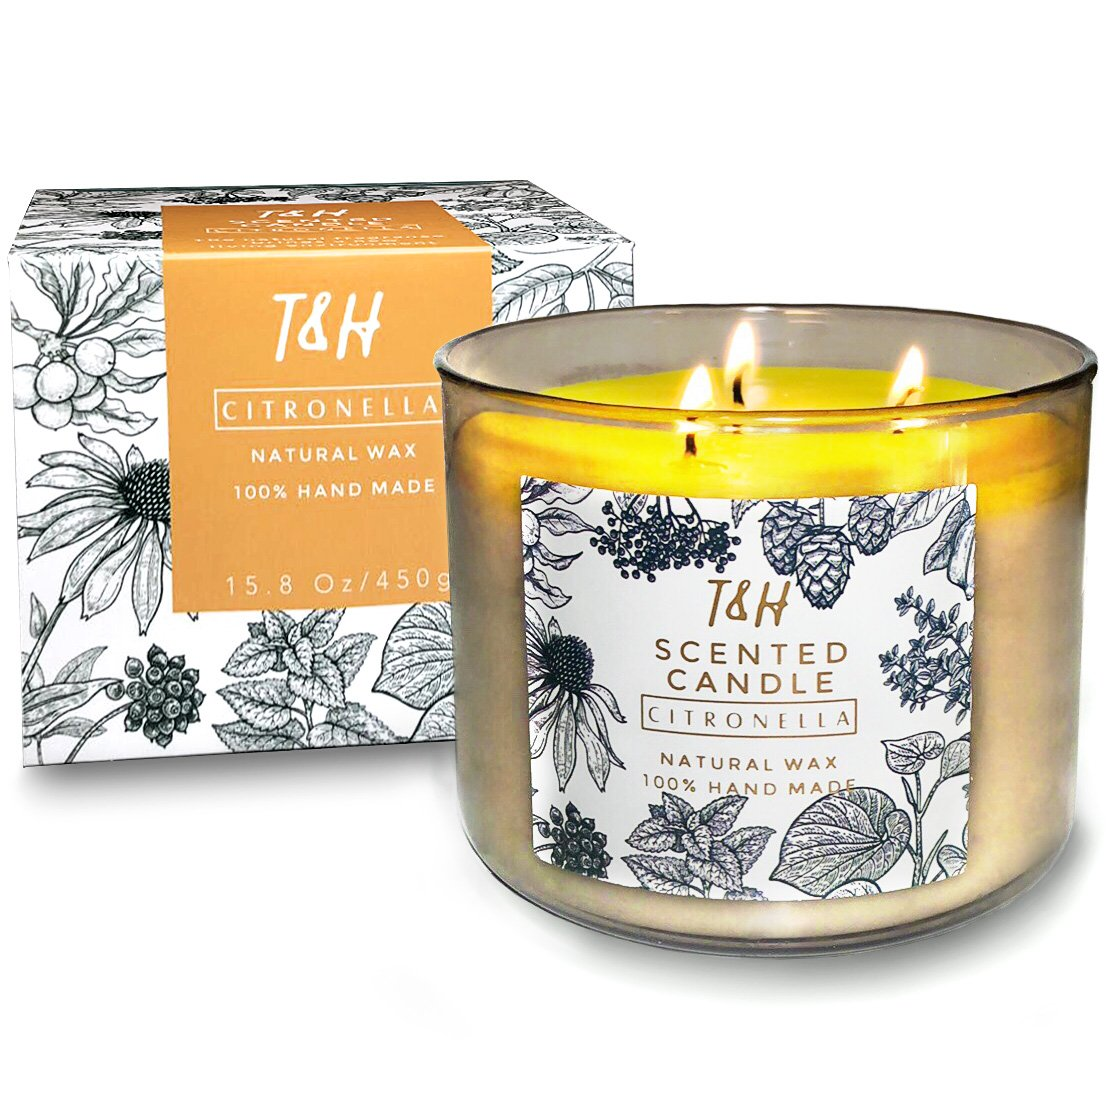 T & H Citronella Candles Outdoor Indoor 3-Wick Soy Scented Candles Aromatherapy Stress Relief 75 Hour Burn